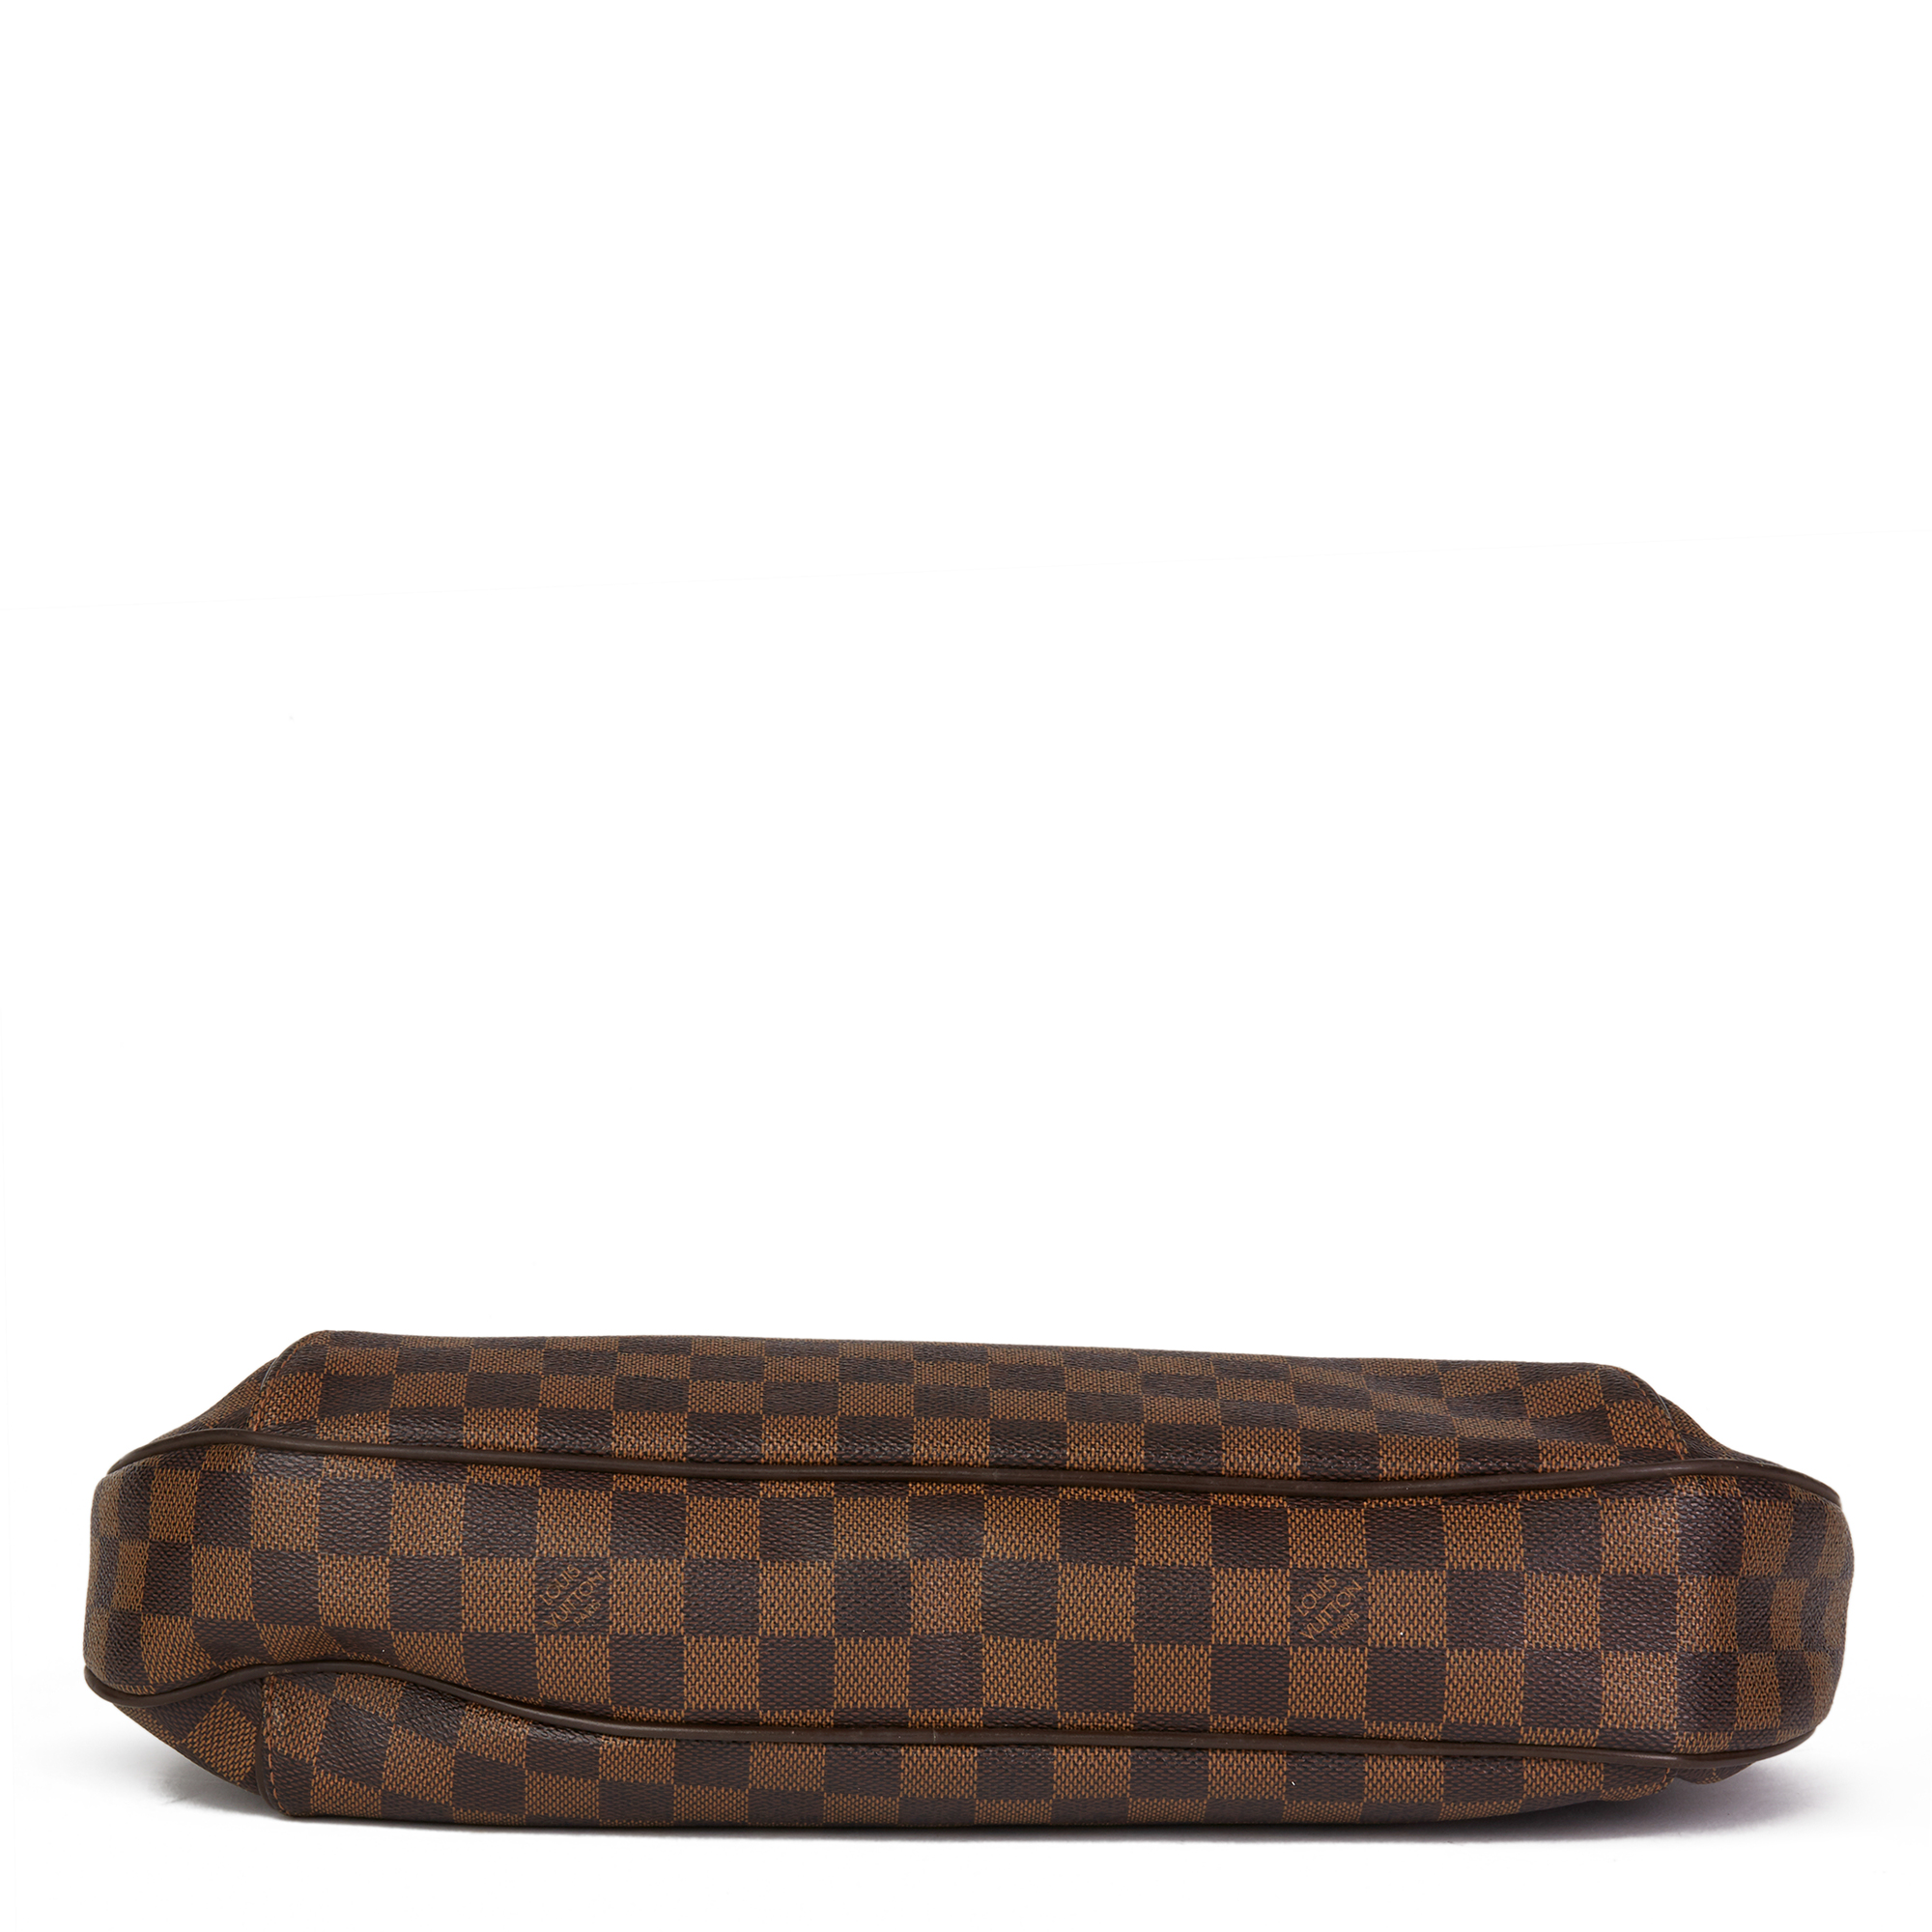 Louis Vuitton Brown Damier Ebene Monogram Coated Canvas Thames PM - Image 7 of 10